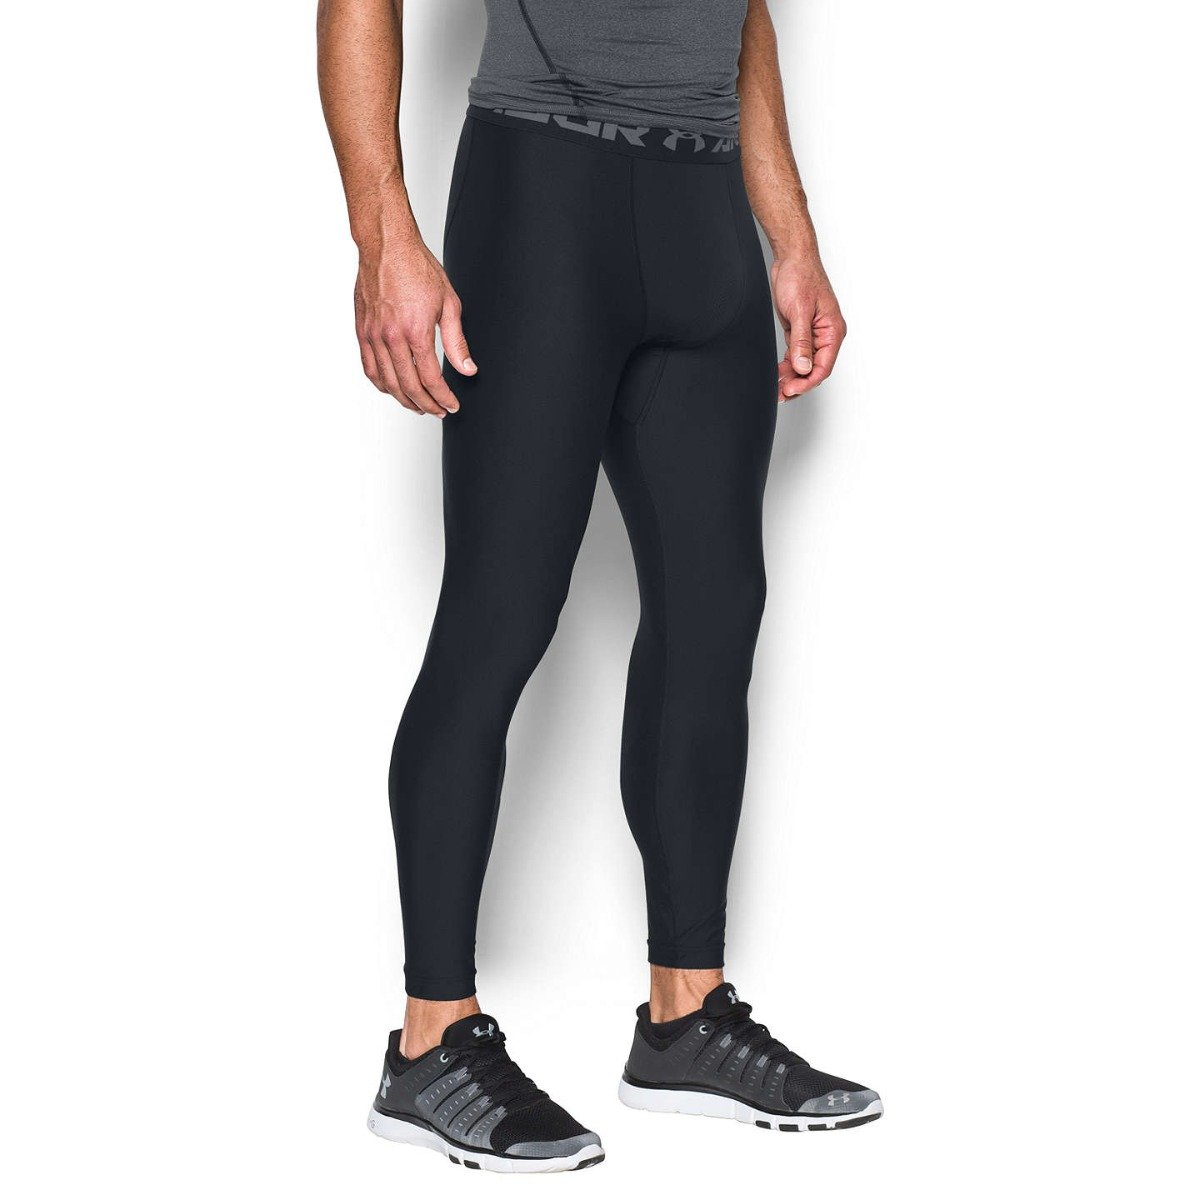 Under Armour Kompresné legíny HG Armour 2.0 Legging Black S